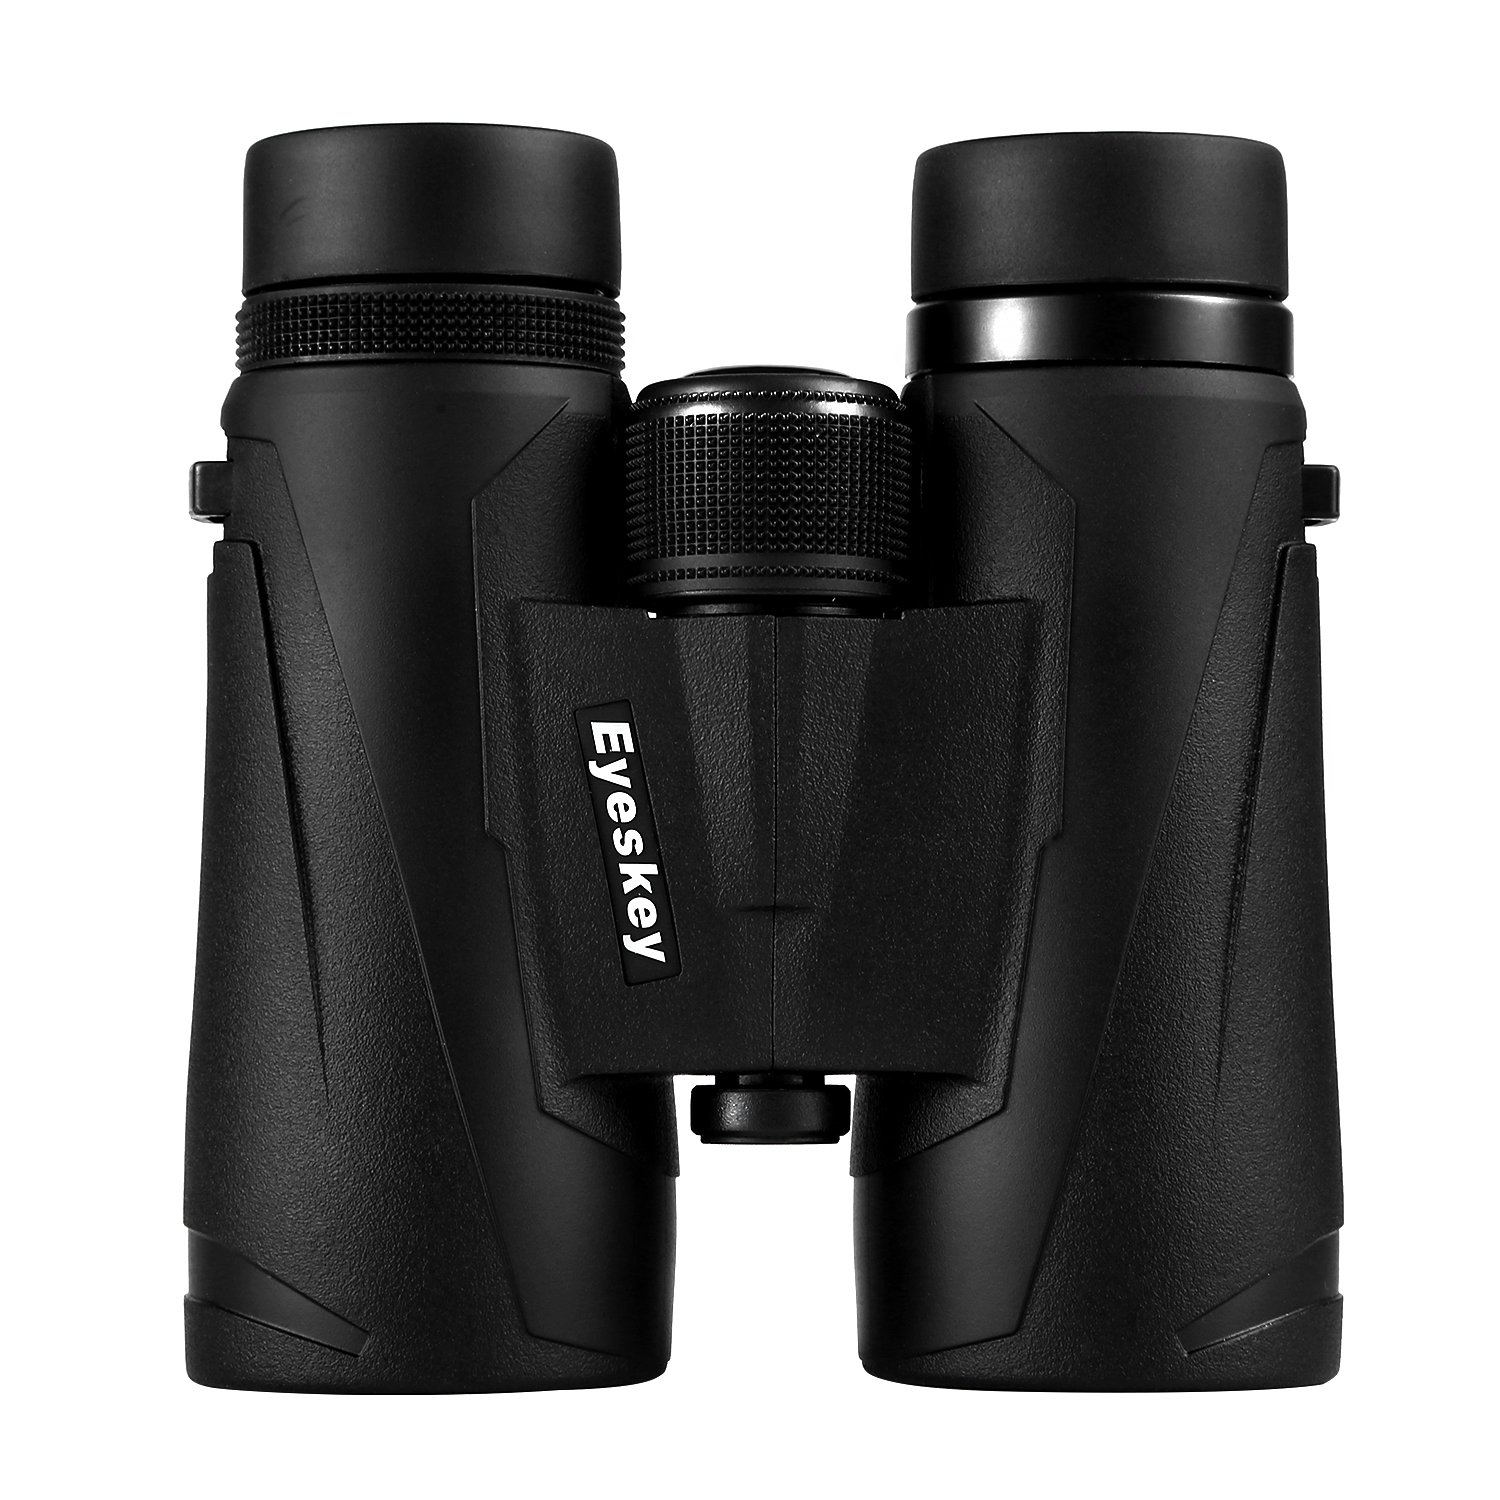 Eyeskey 10x42 Professional Waterproof Binoculars for Adults, Best Choice for Travelling, Hunting, Sports Games and Outdoor Activities, Extremely Clear and Bright by Eyeskey